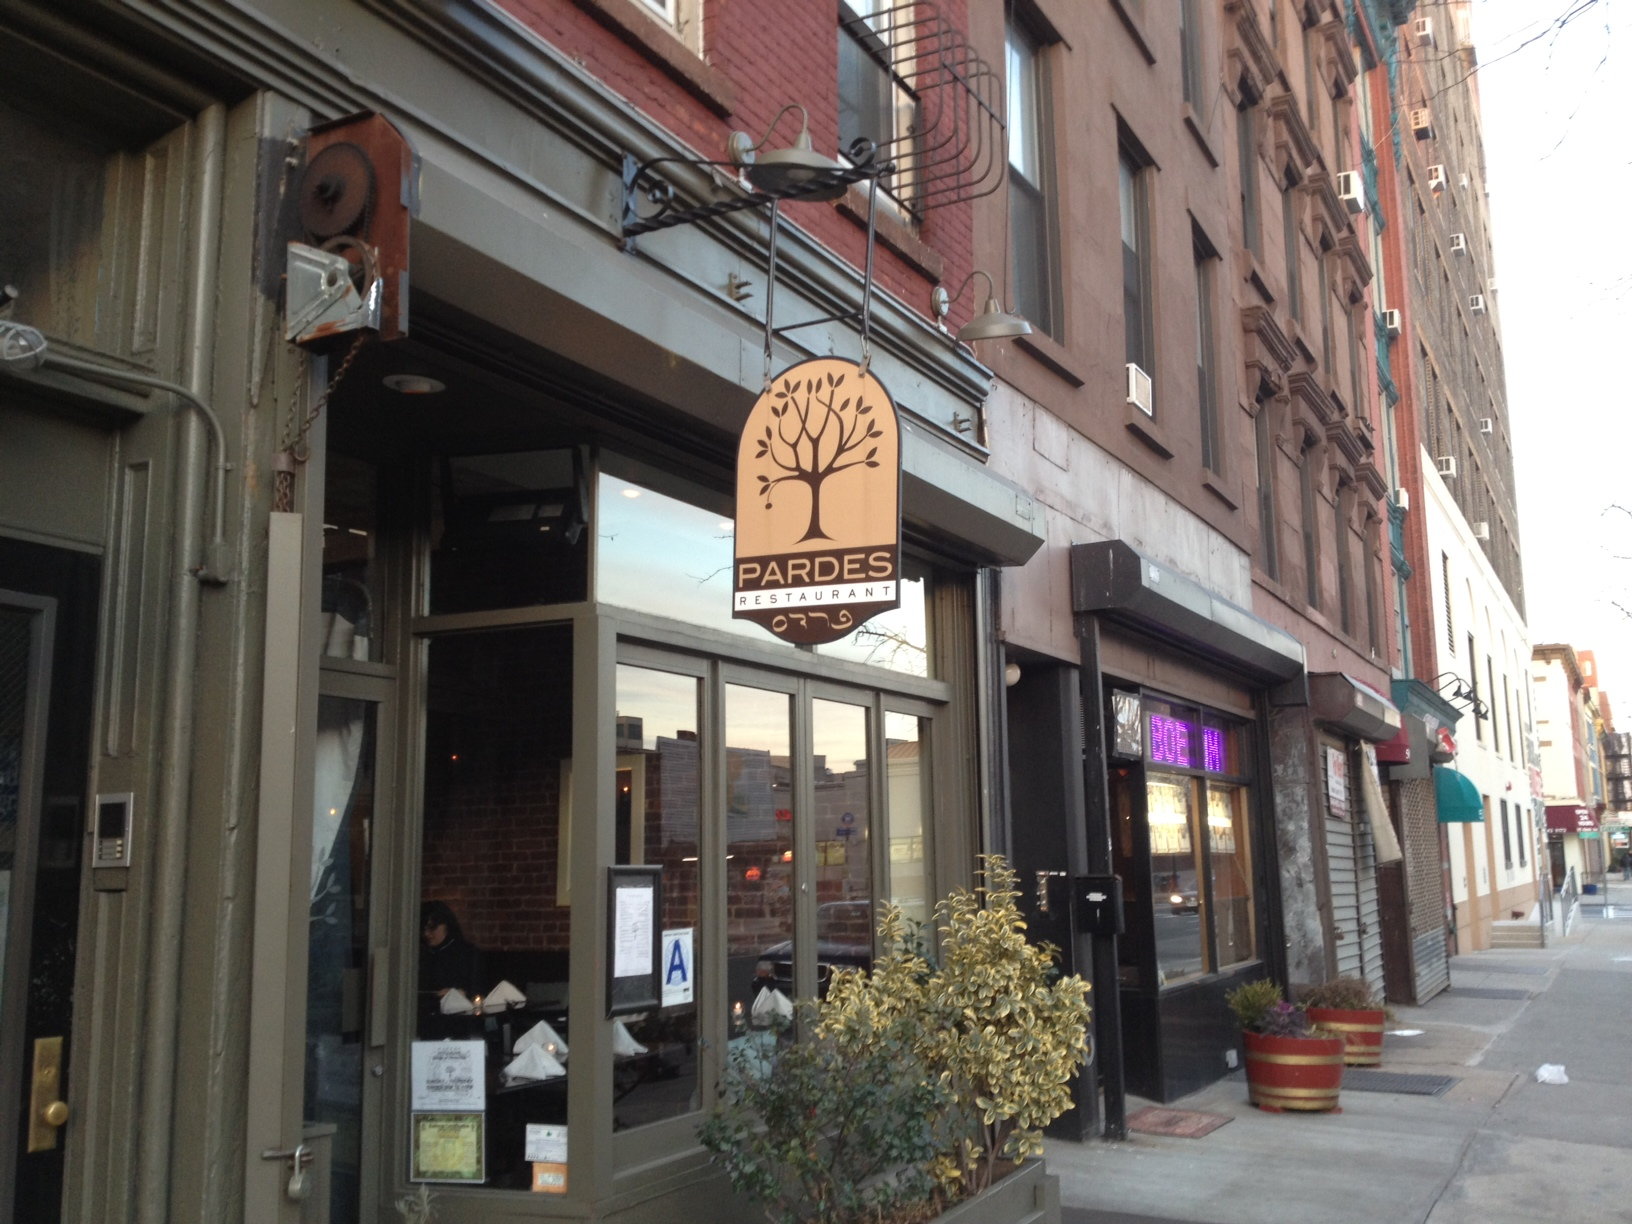 Italian Foods Near Me: A Review Of Pardes Restaurant, Downtown Brooklyn, NY